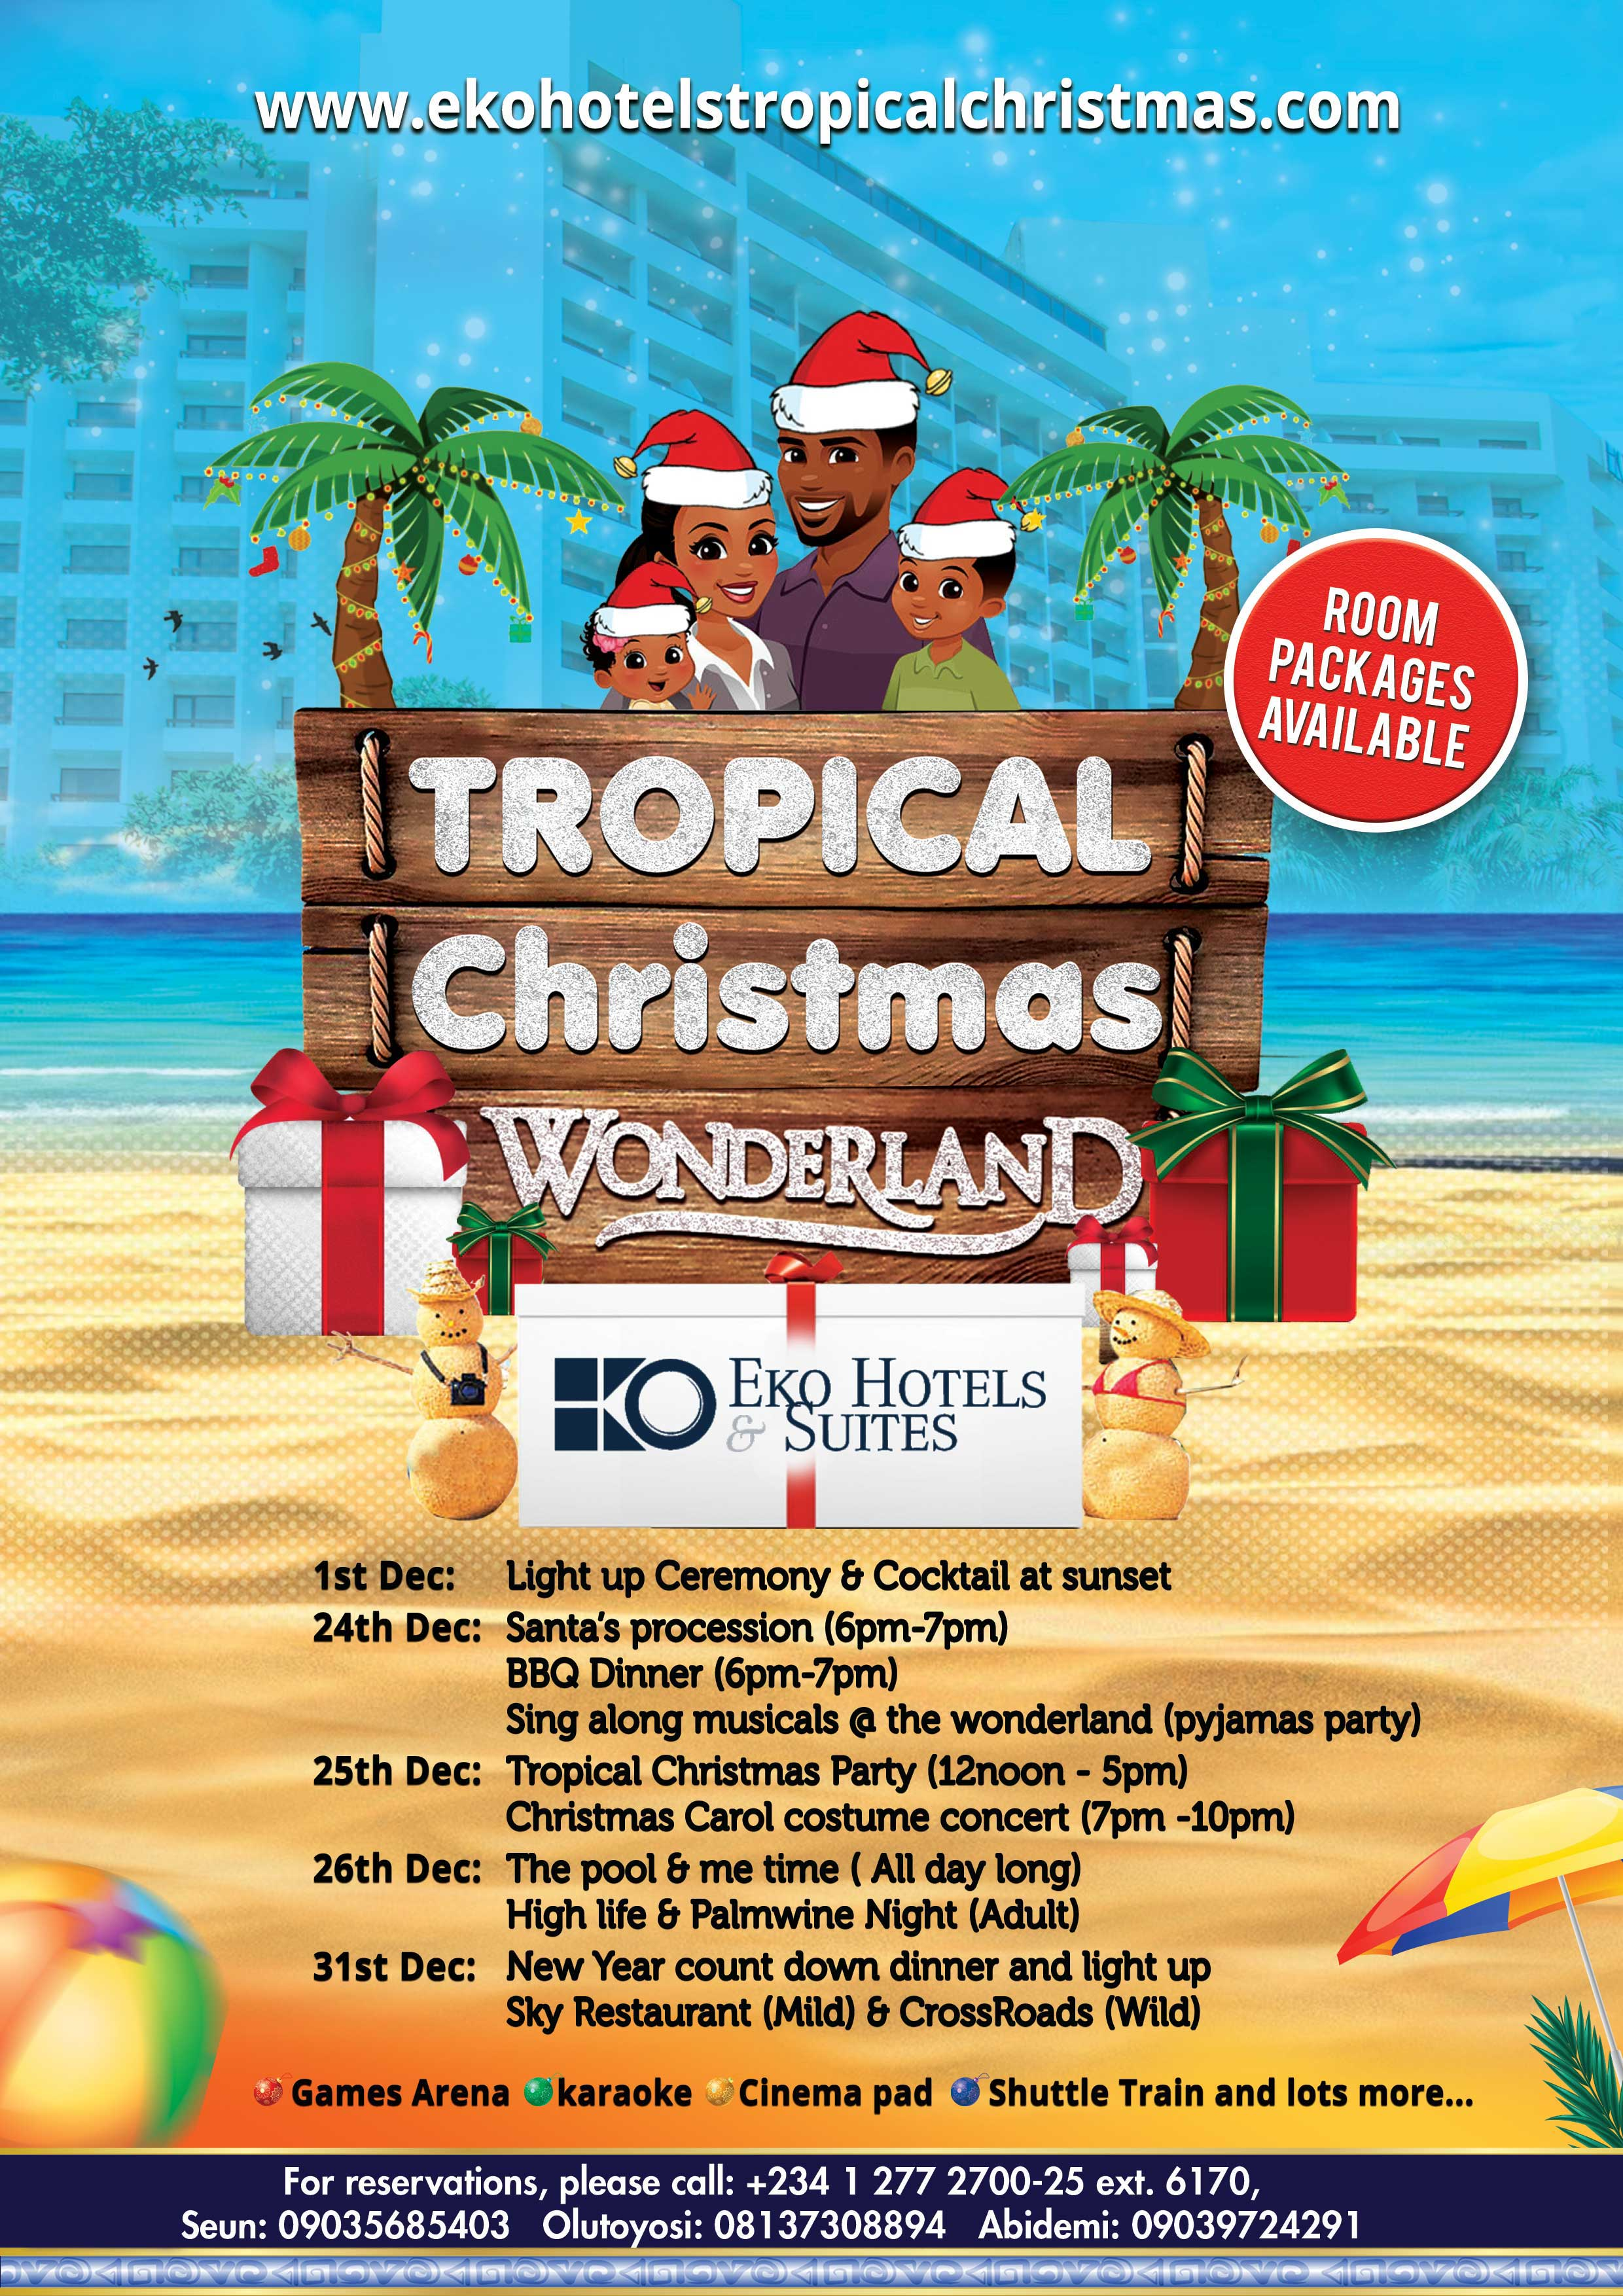 Tropical Christmas.Get Ready For 5 Days Of Intense Fun Entertainment At The